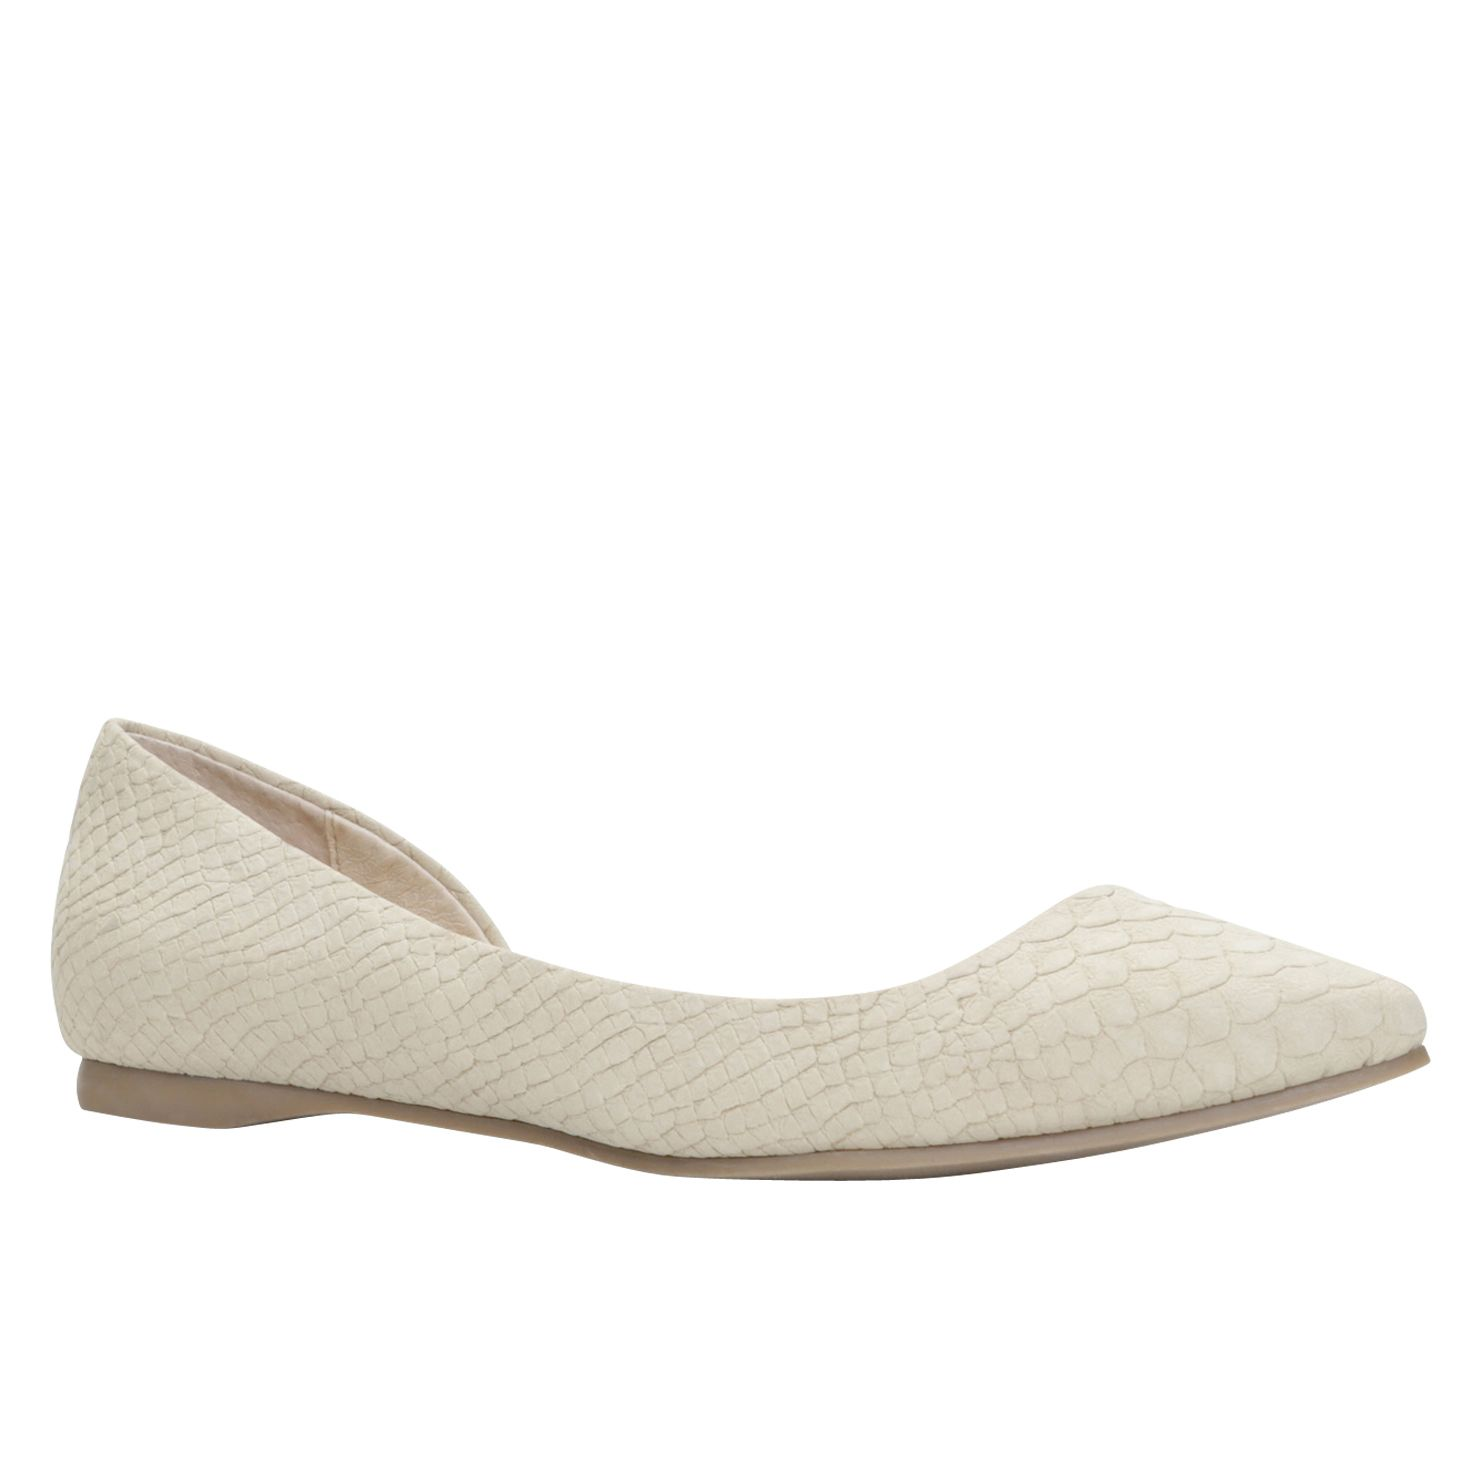 Naleri almond toe ballerina shoes